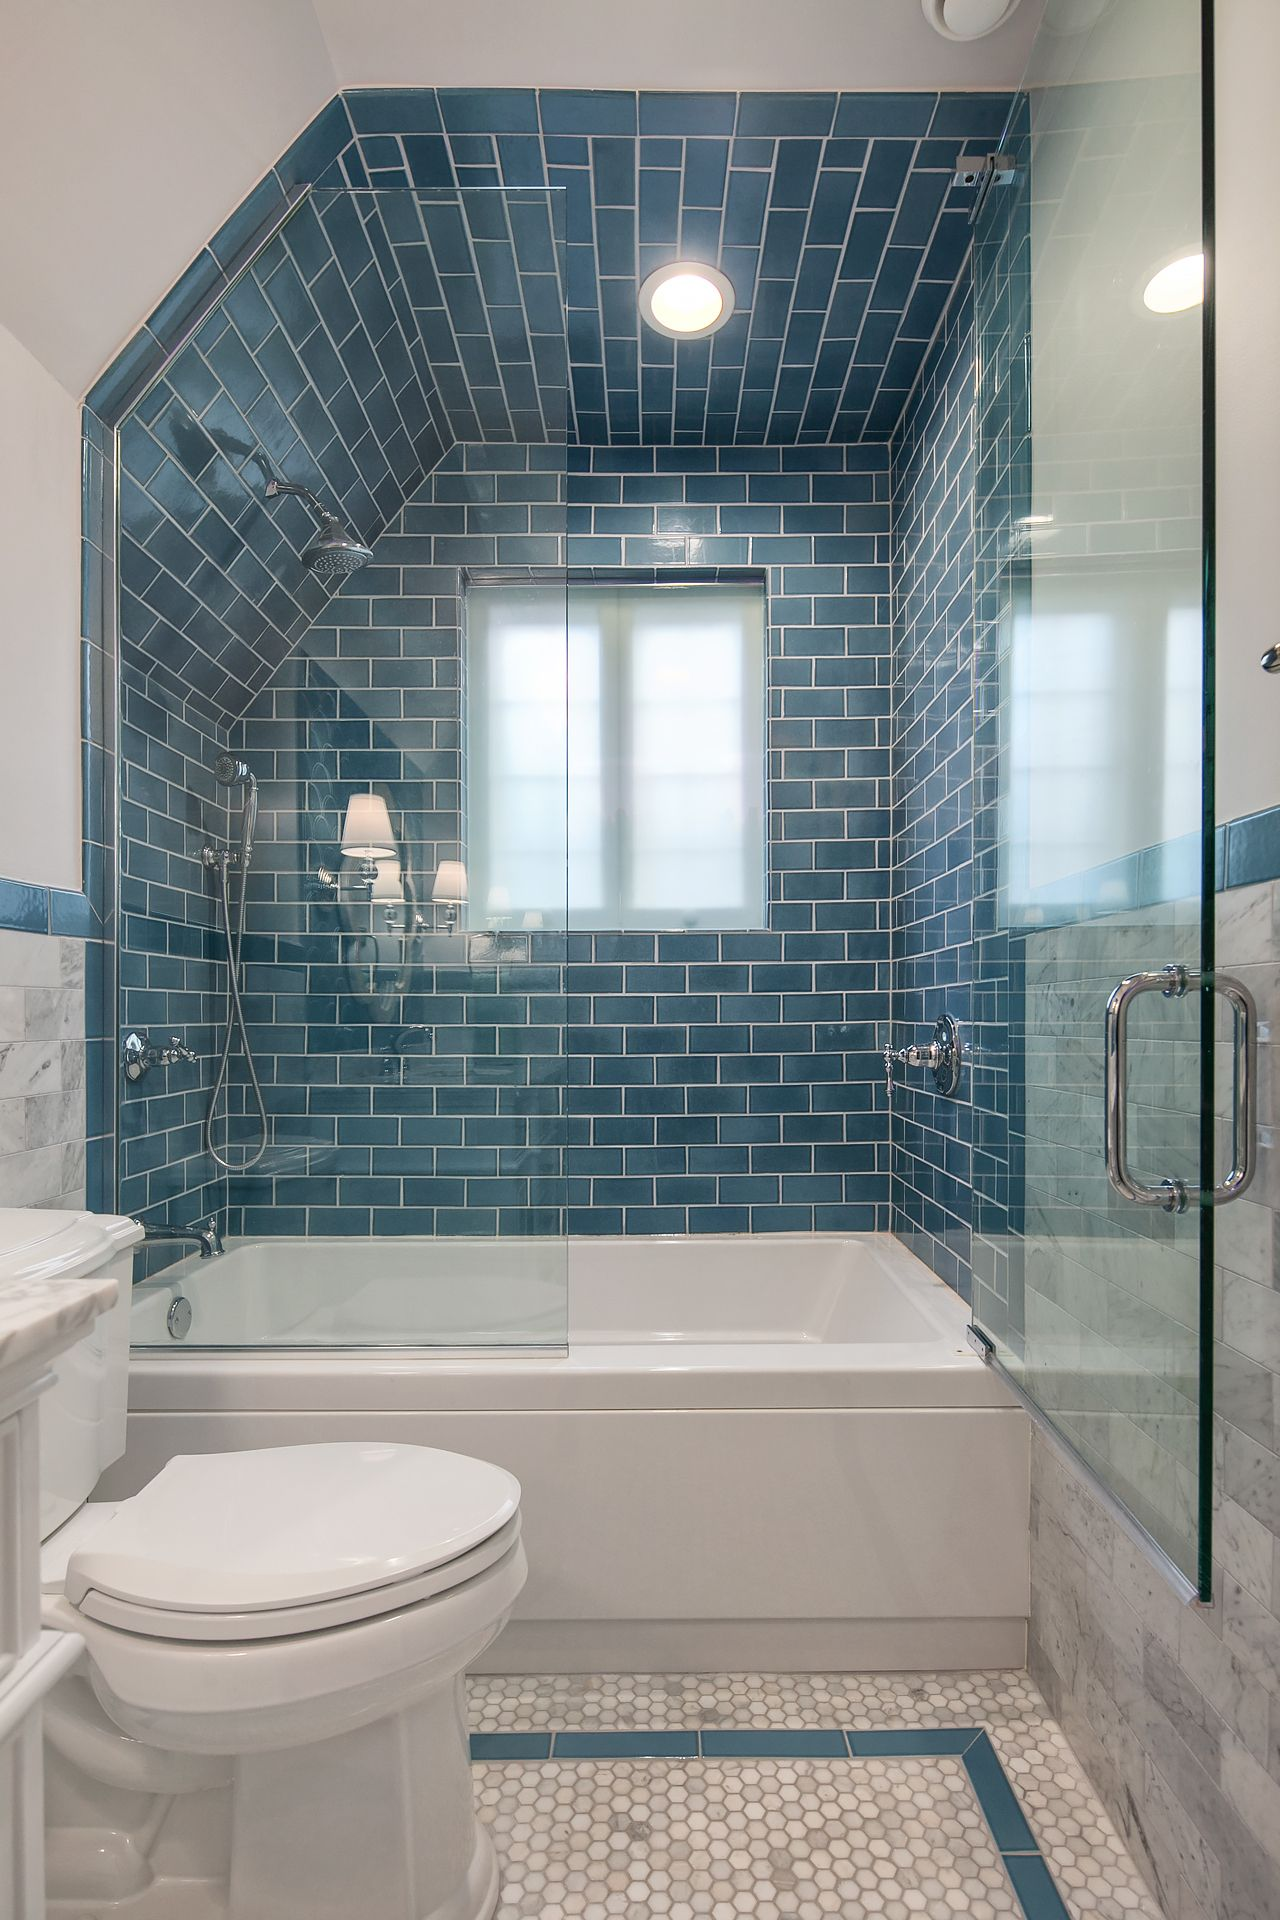 Bath Alcove Inspiration No Shower Glass Just Bath Window Moves To Exterior Knee Wall In 2020 Blue Bathroom Tile Stylish Bathroom Bathroom Tile Designs